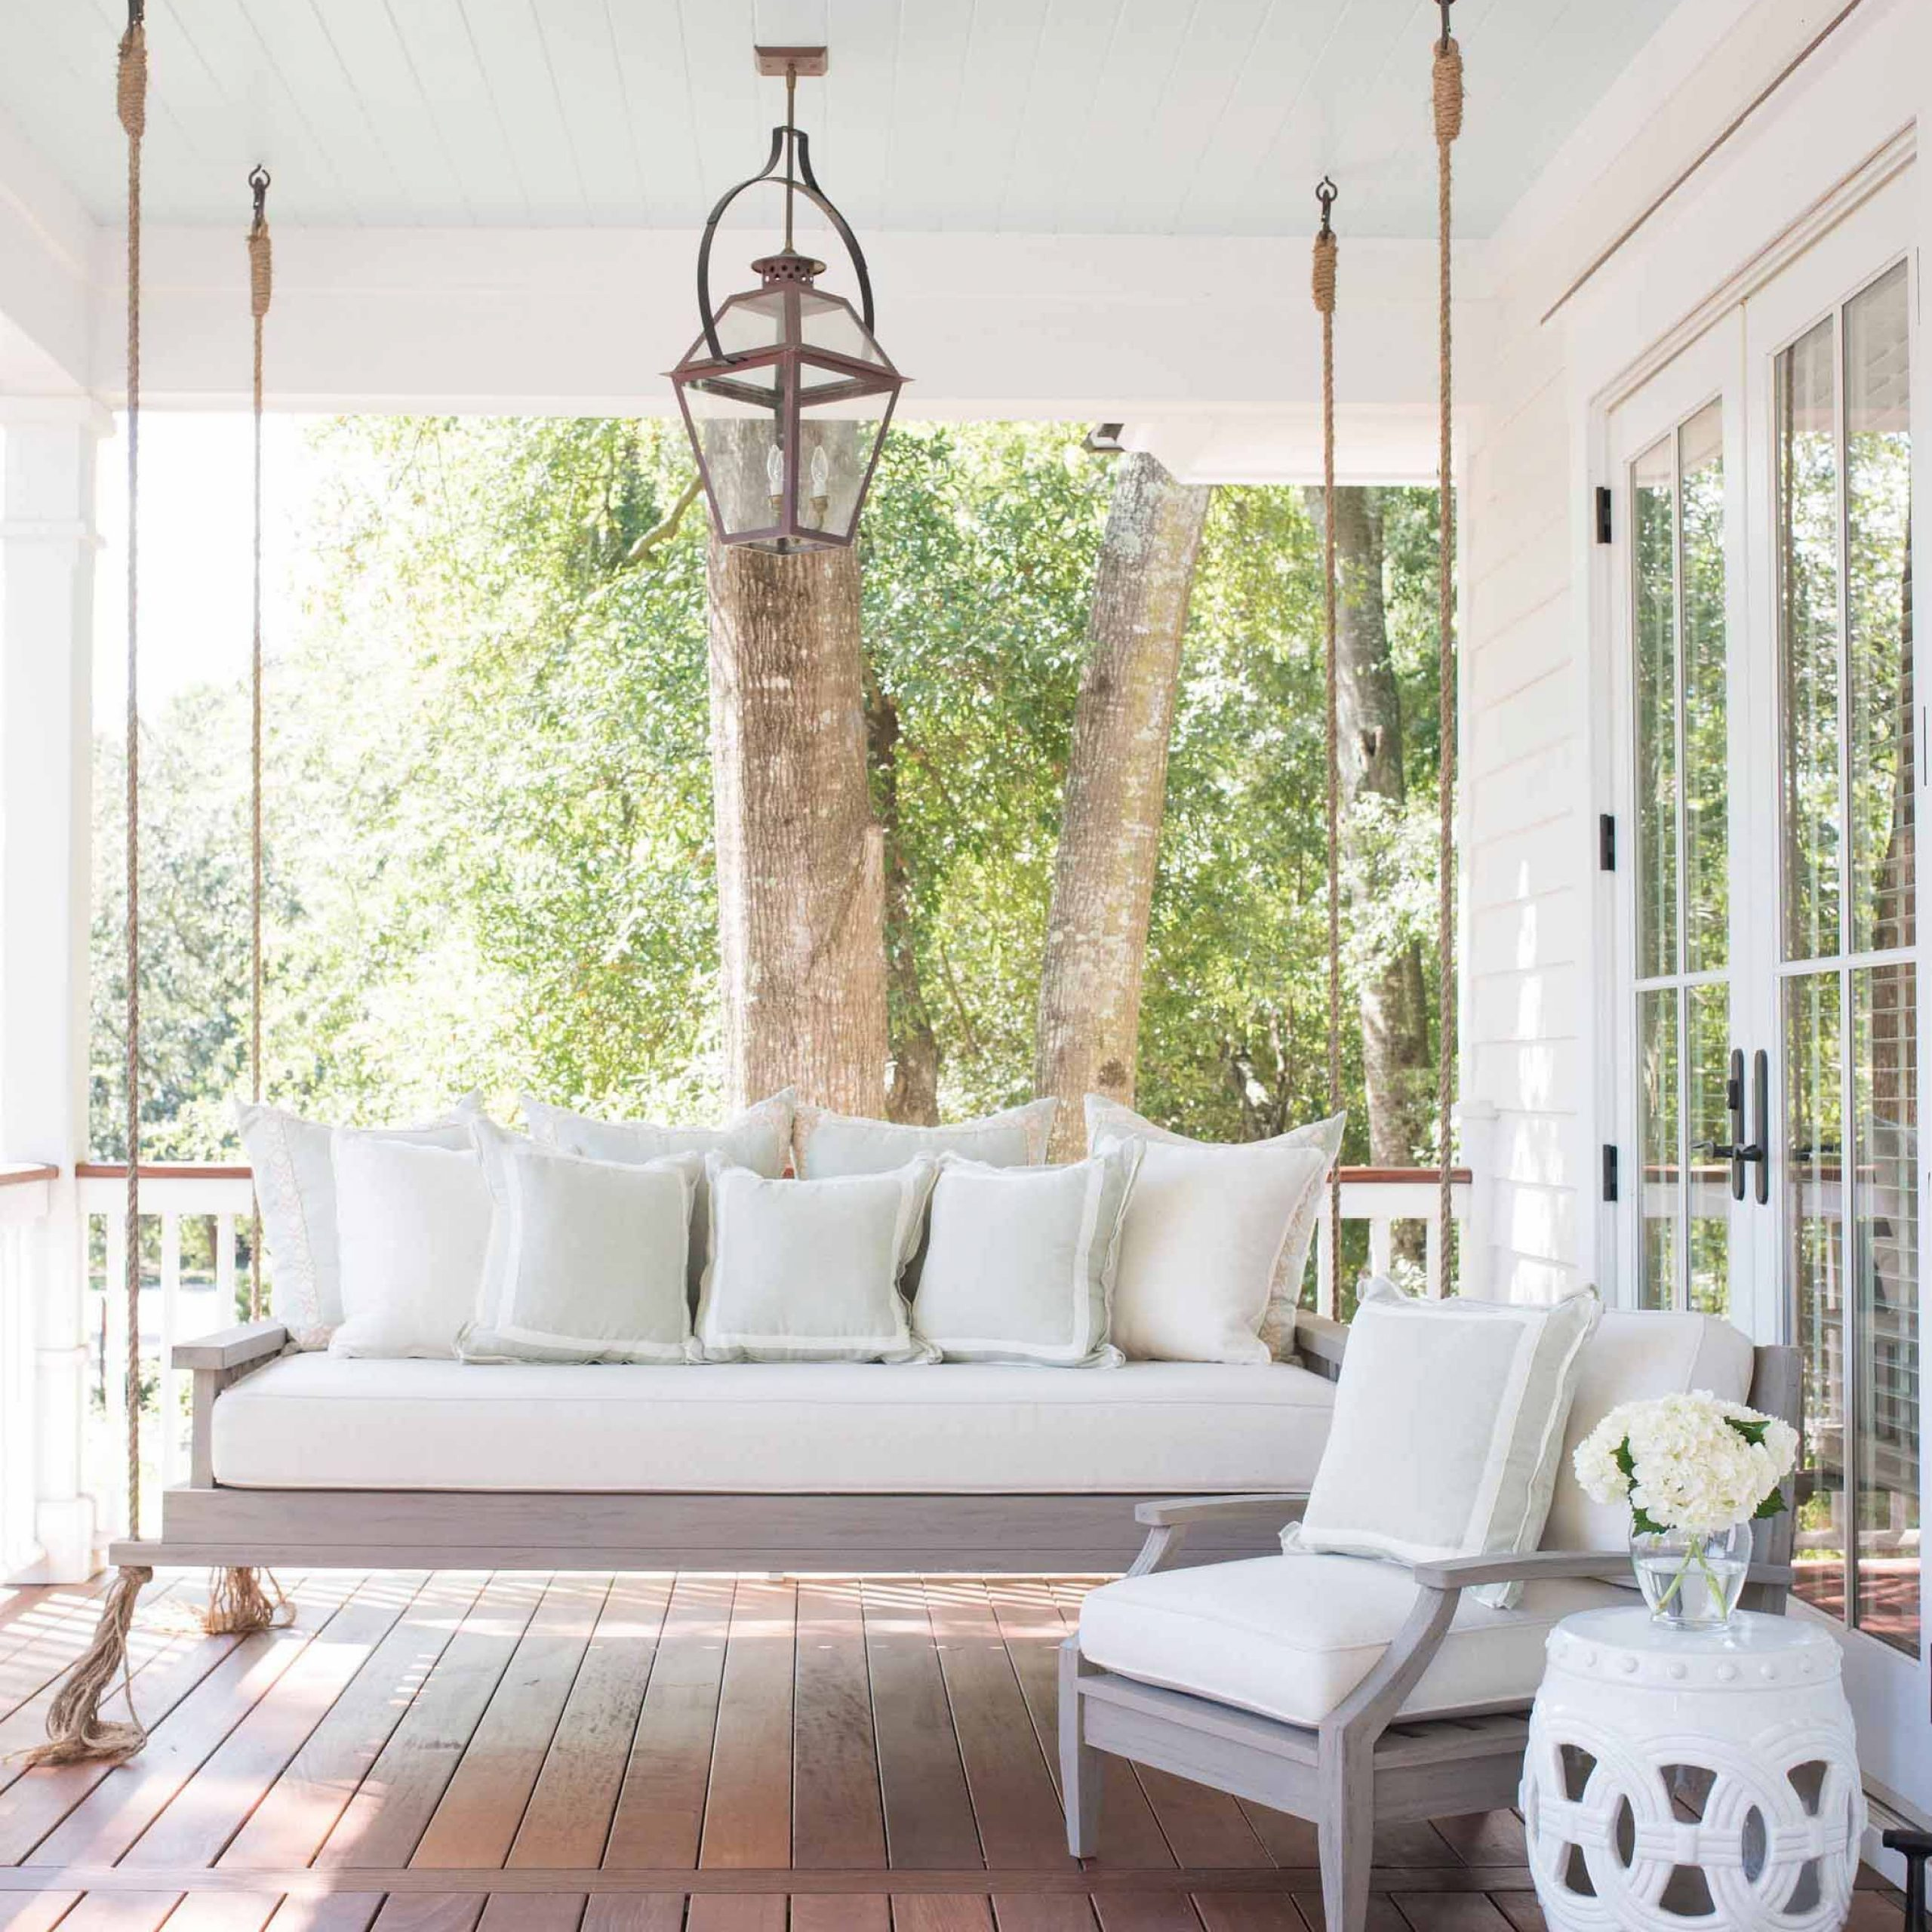 Southern Home Decor Inspiration | Patios And Porches With Patio Hanging Porch Swings (View 5 of 25)